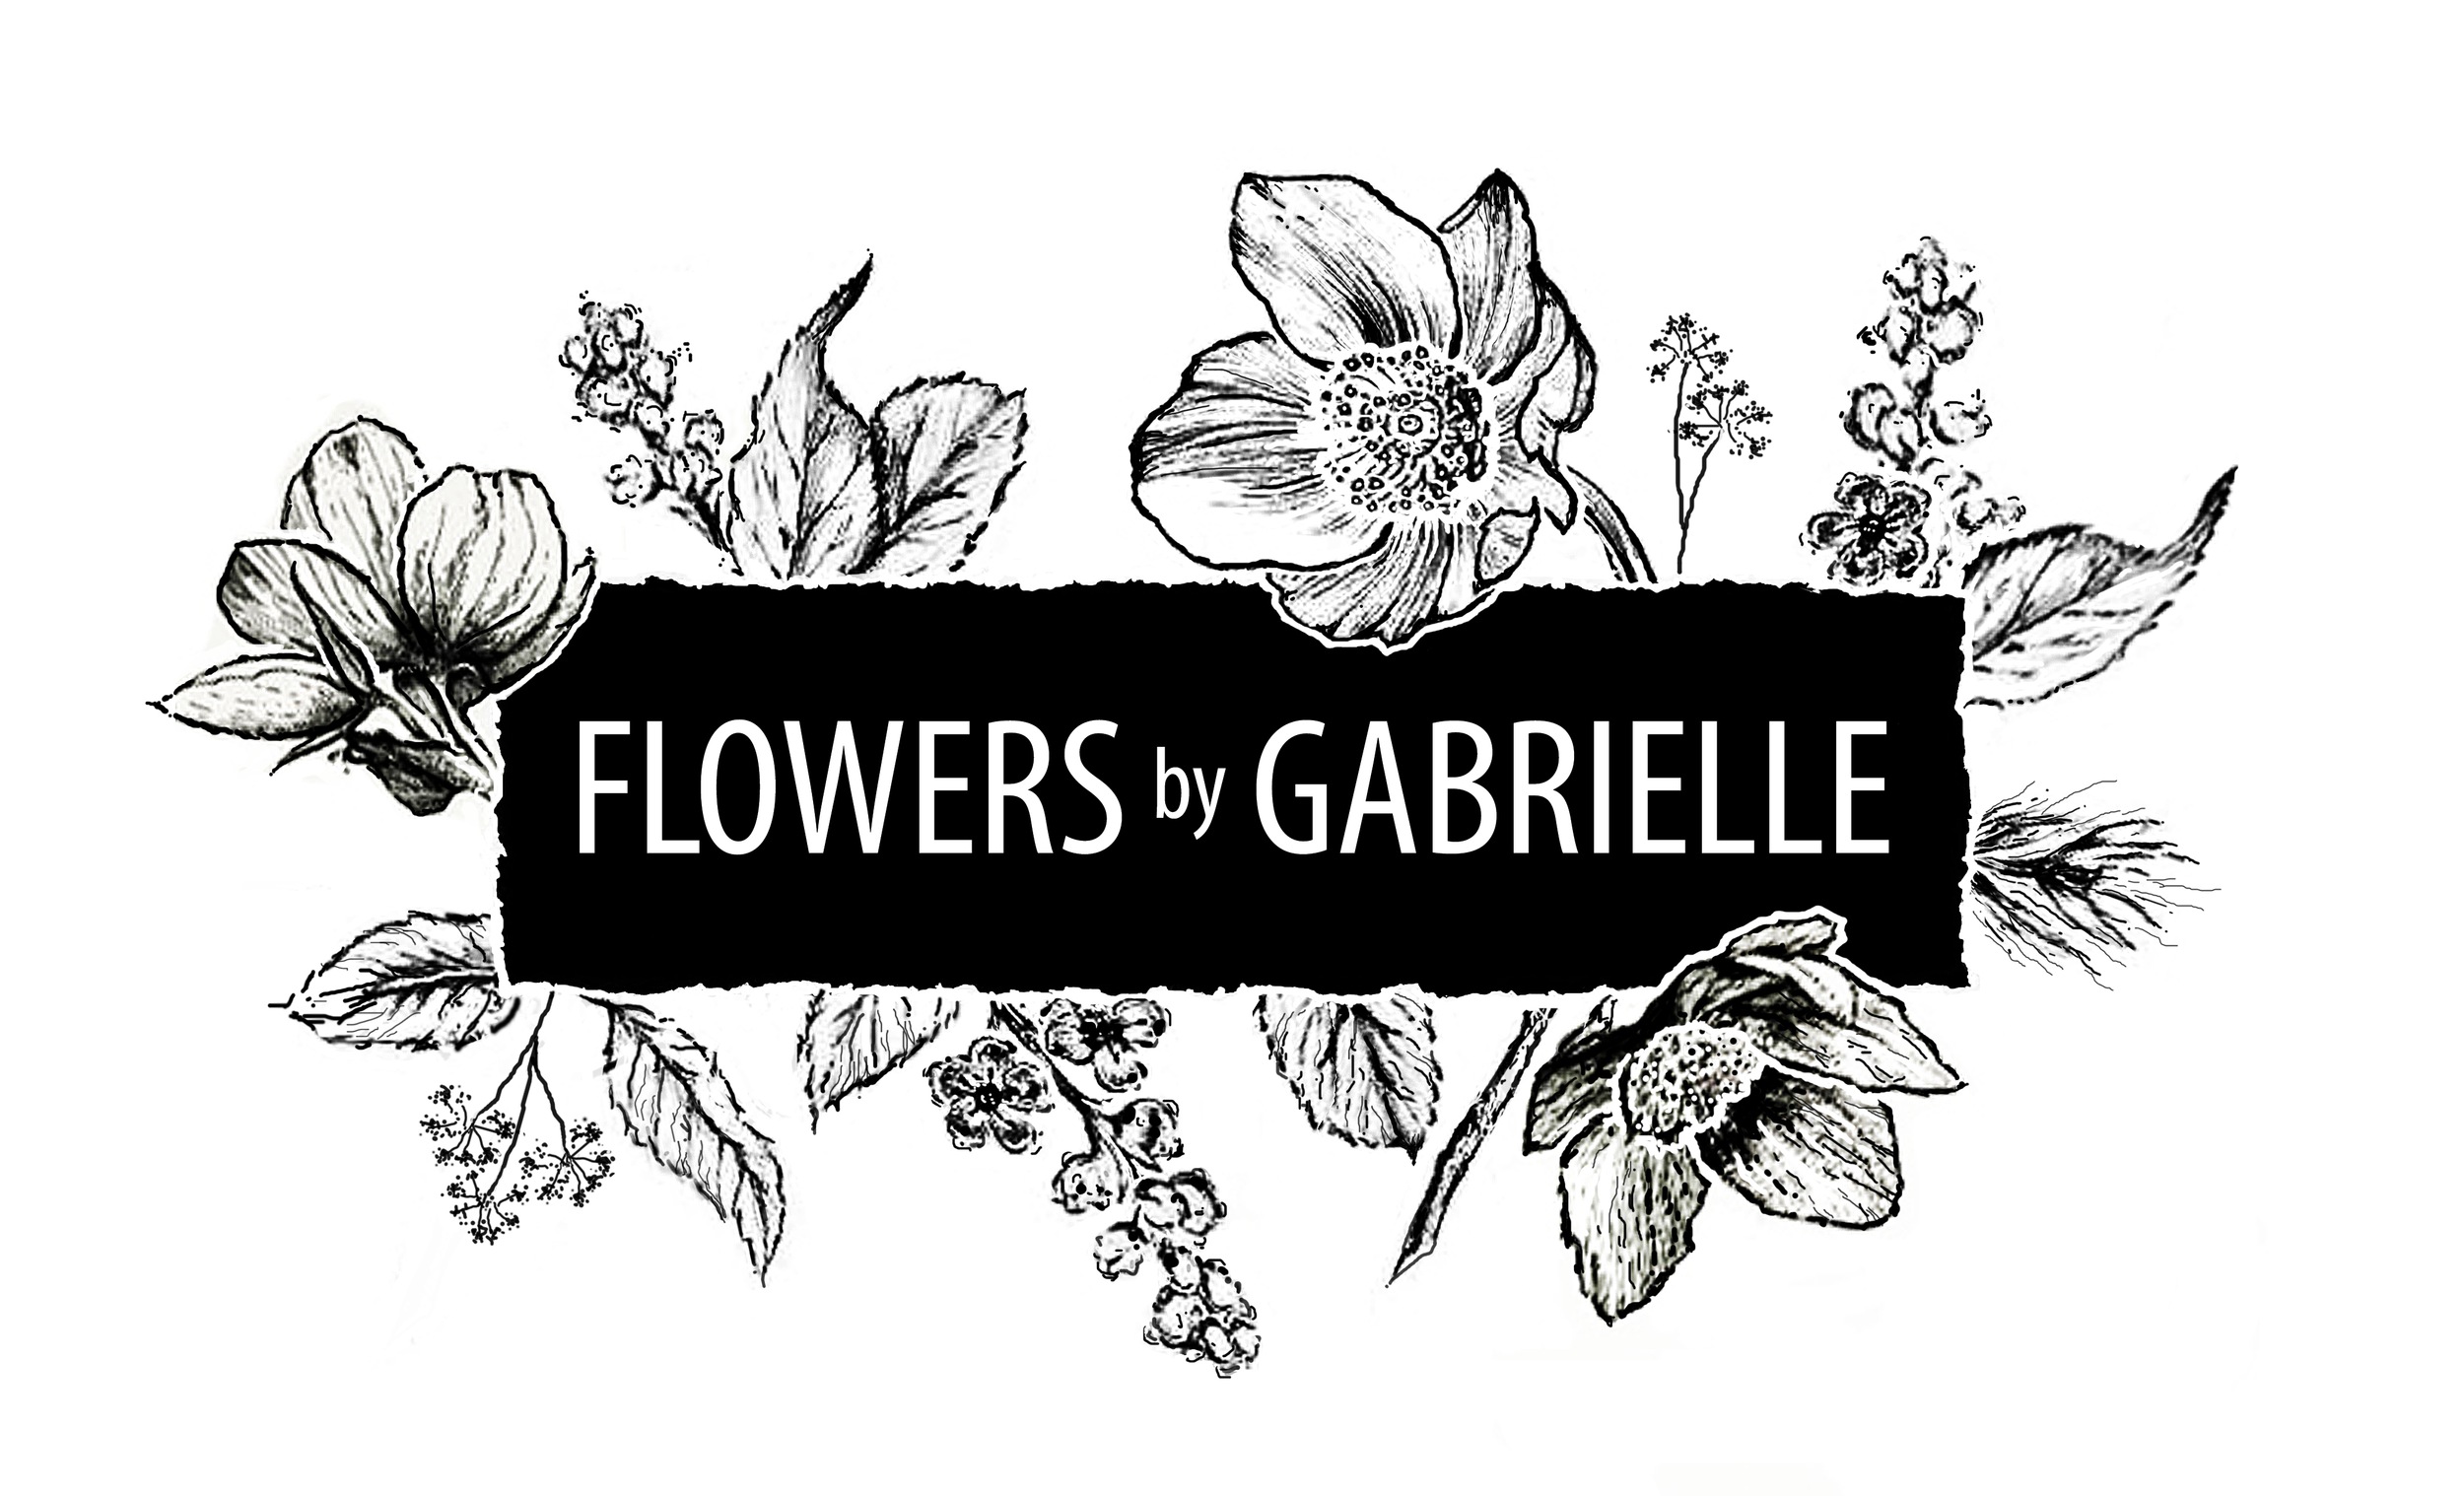 Flowers by Gabrielle